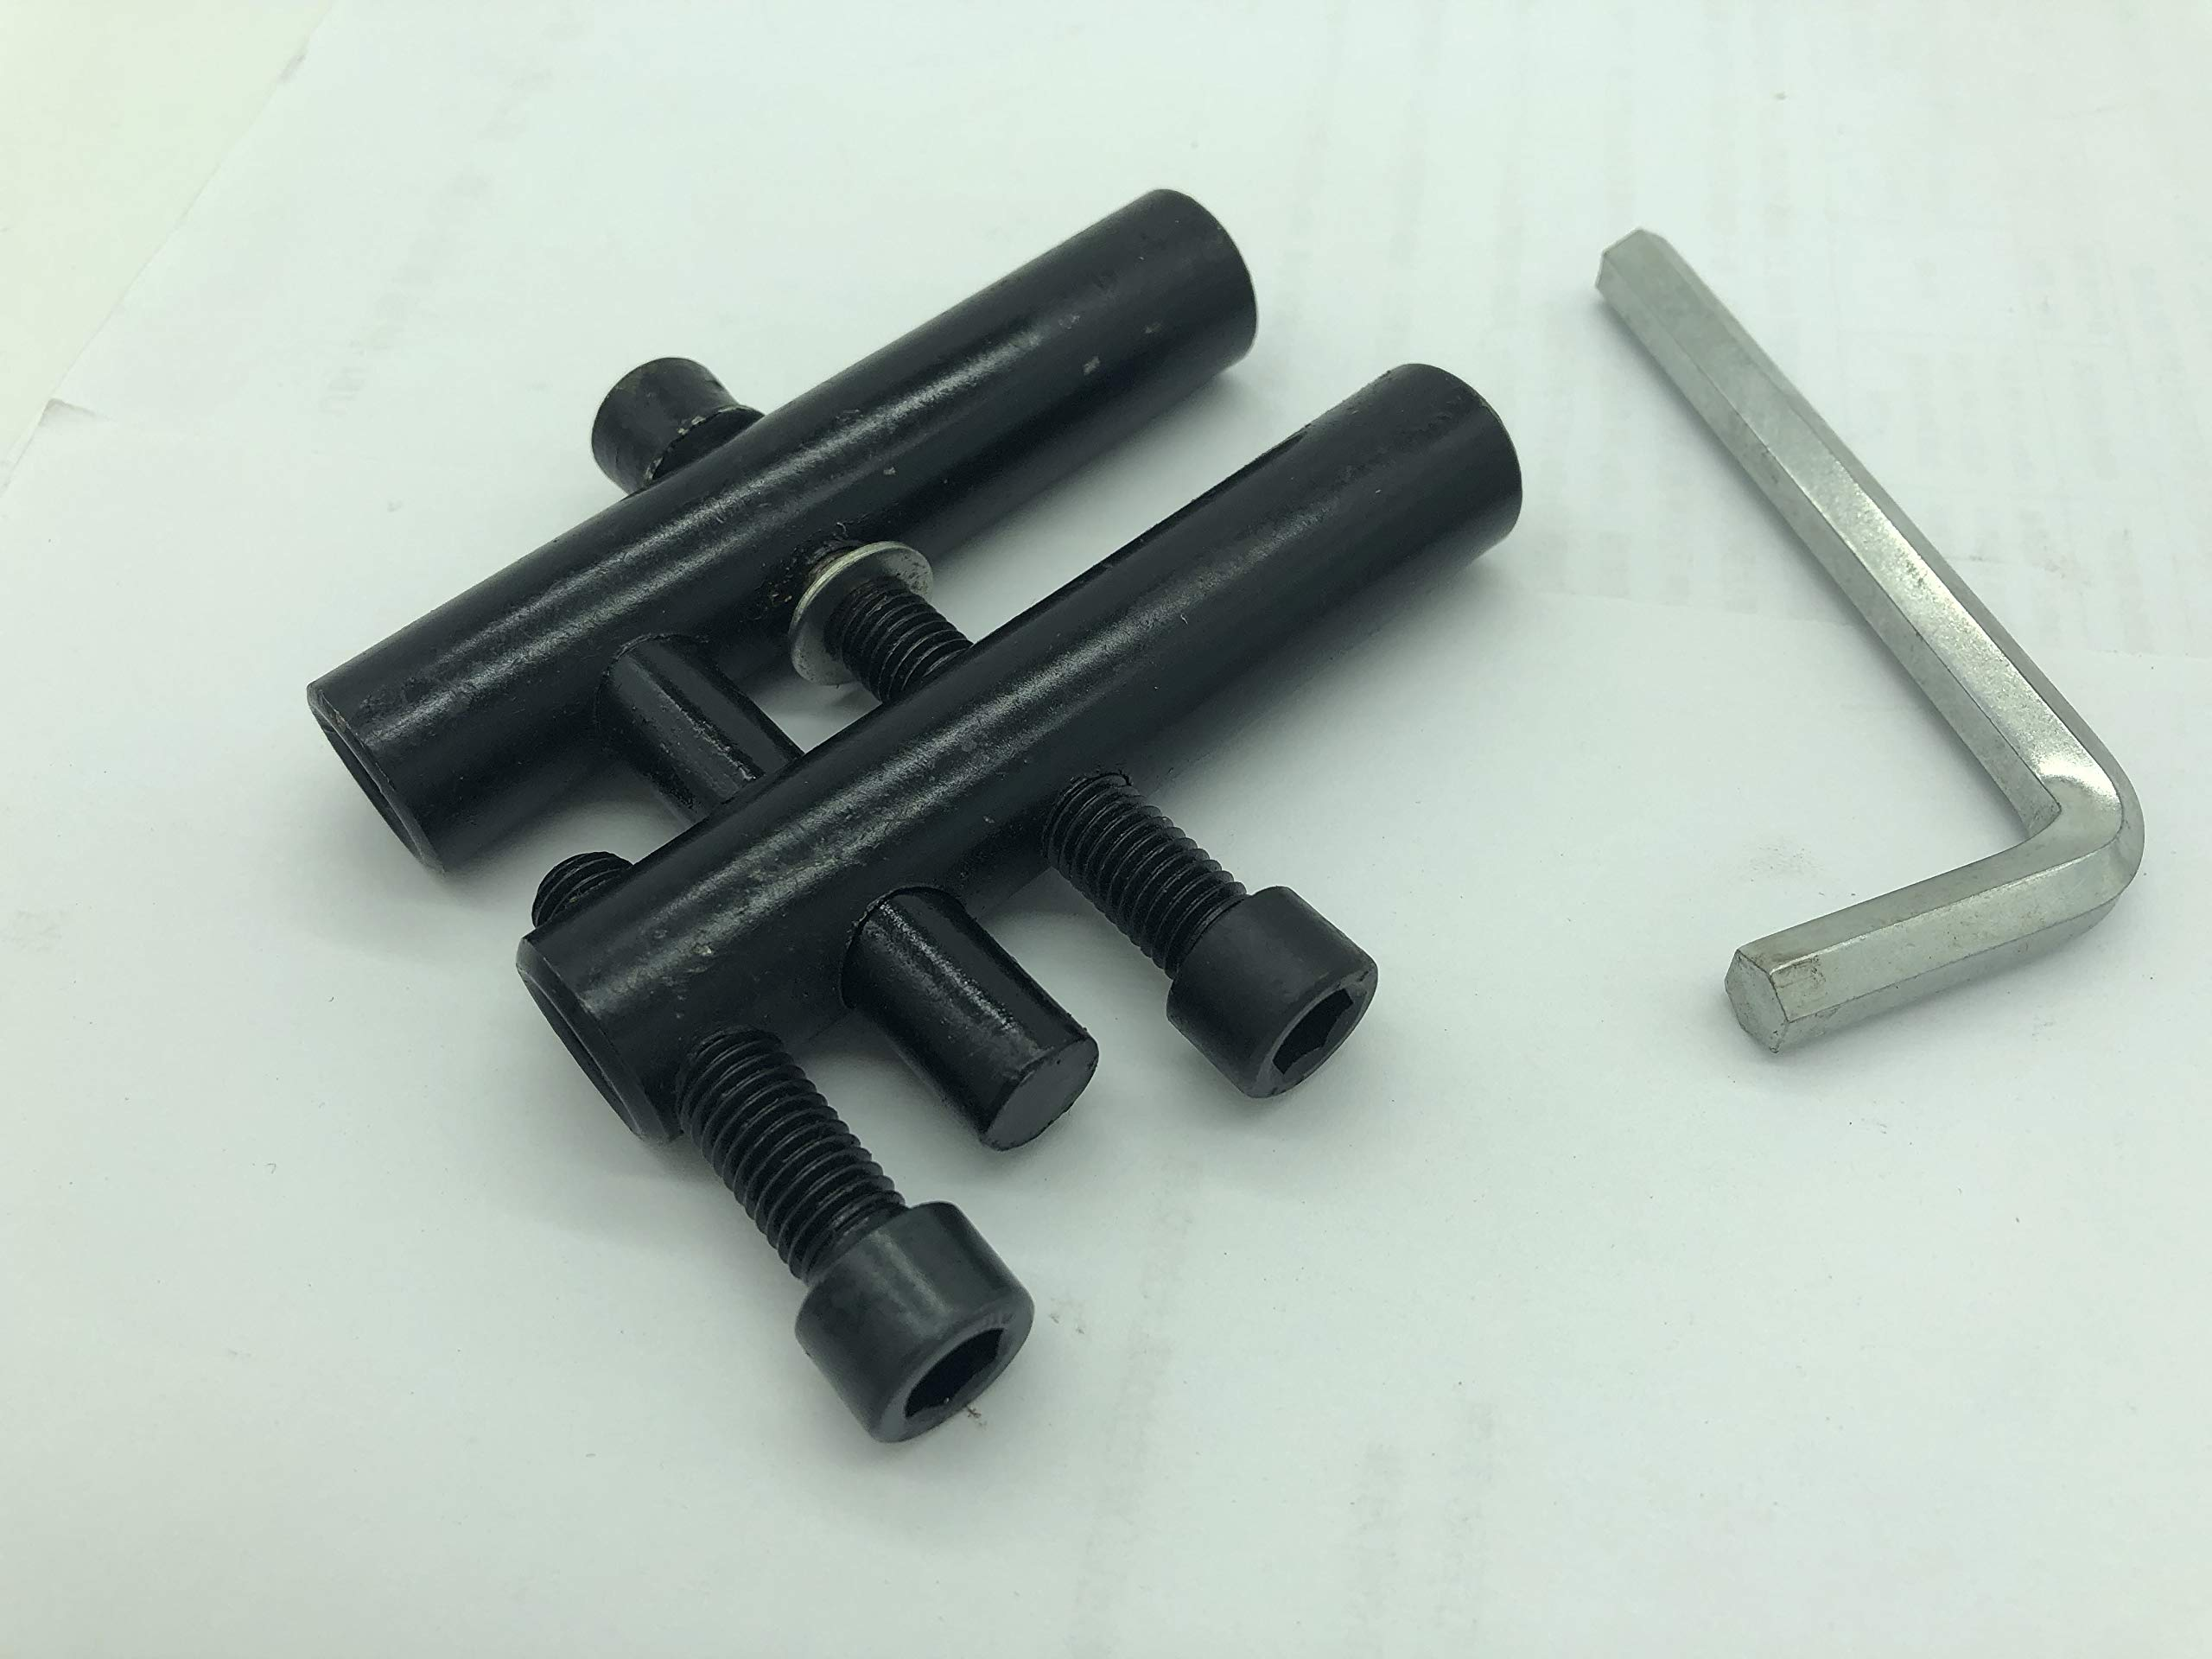 Pipe Squeeze Off Tool, Clamp Plumbing Tool 0-31MM with Hex Wrench.